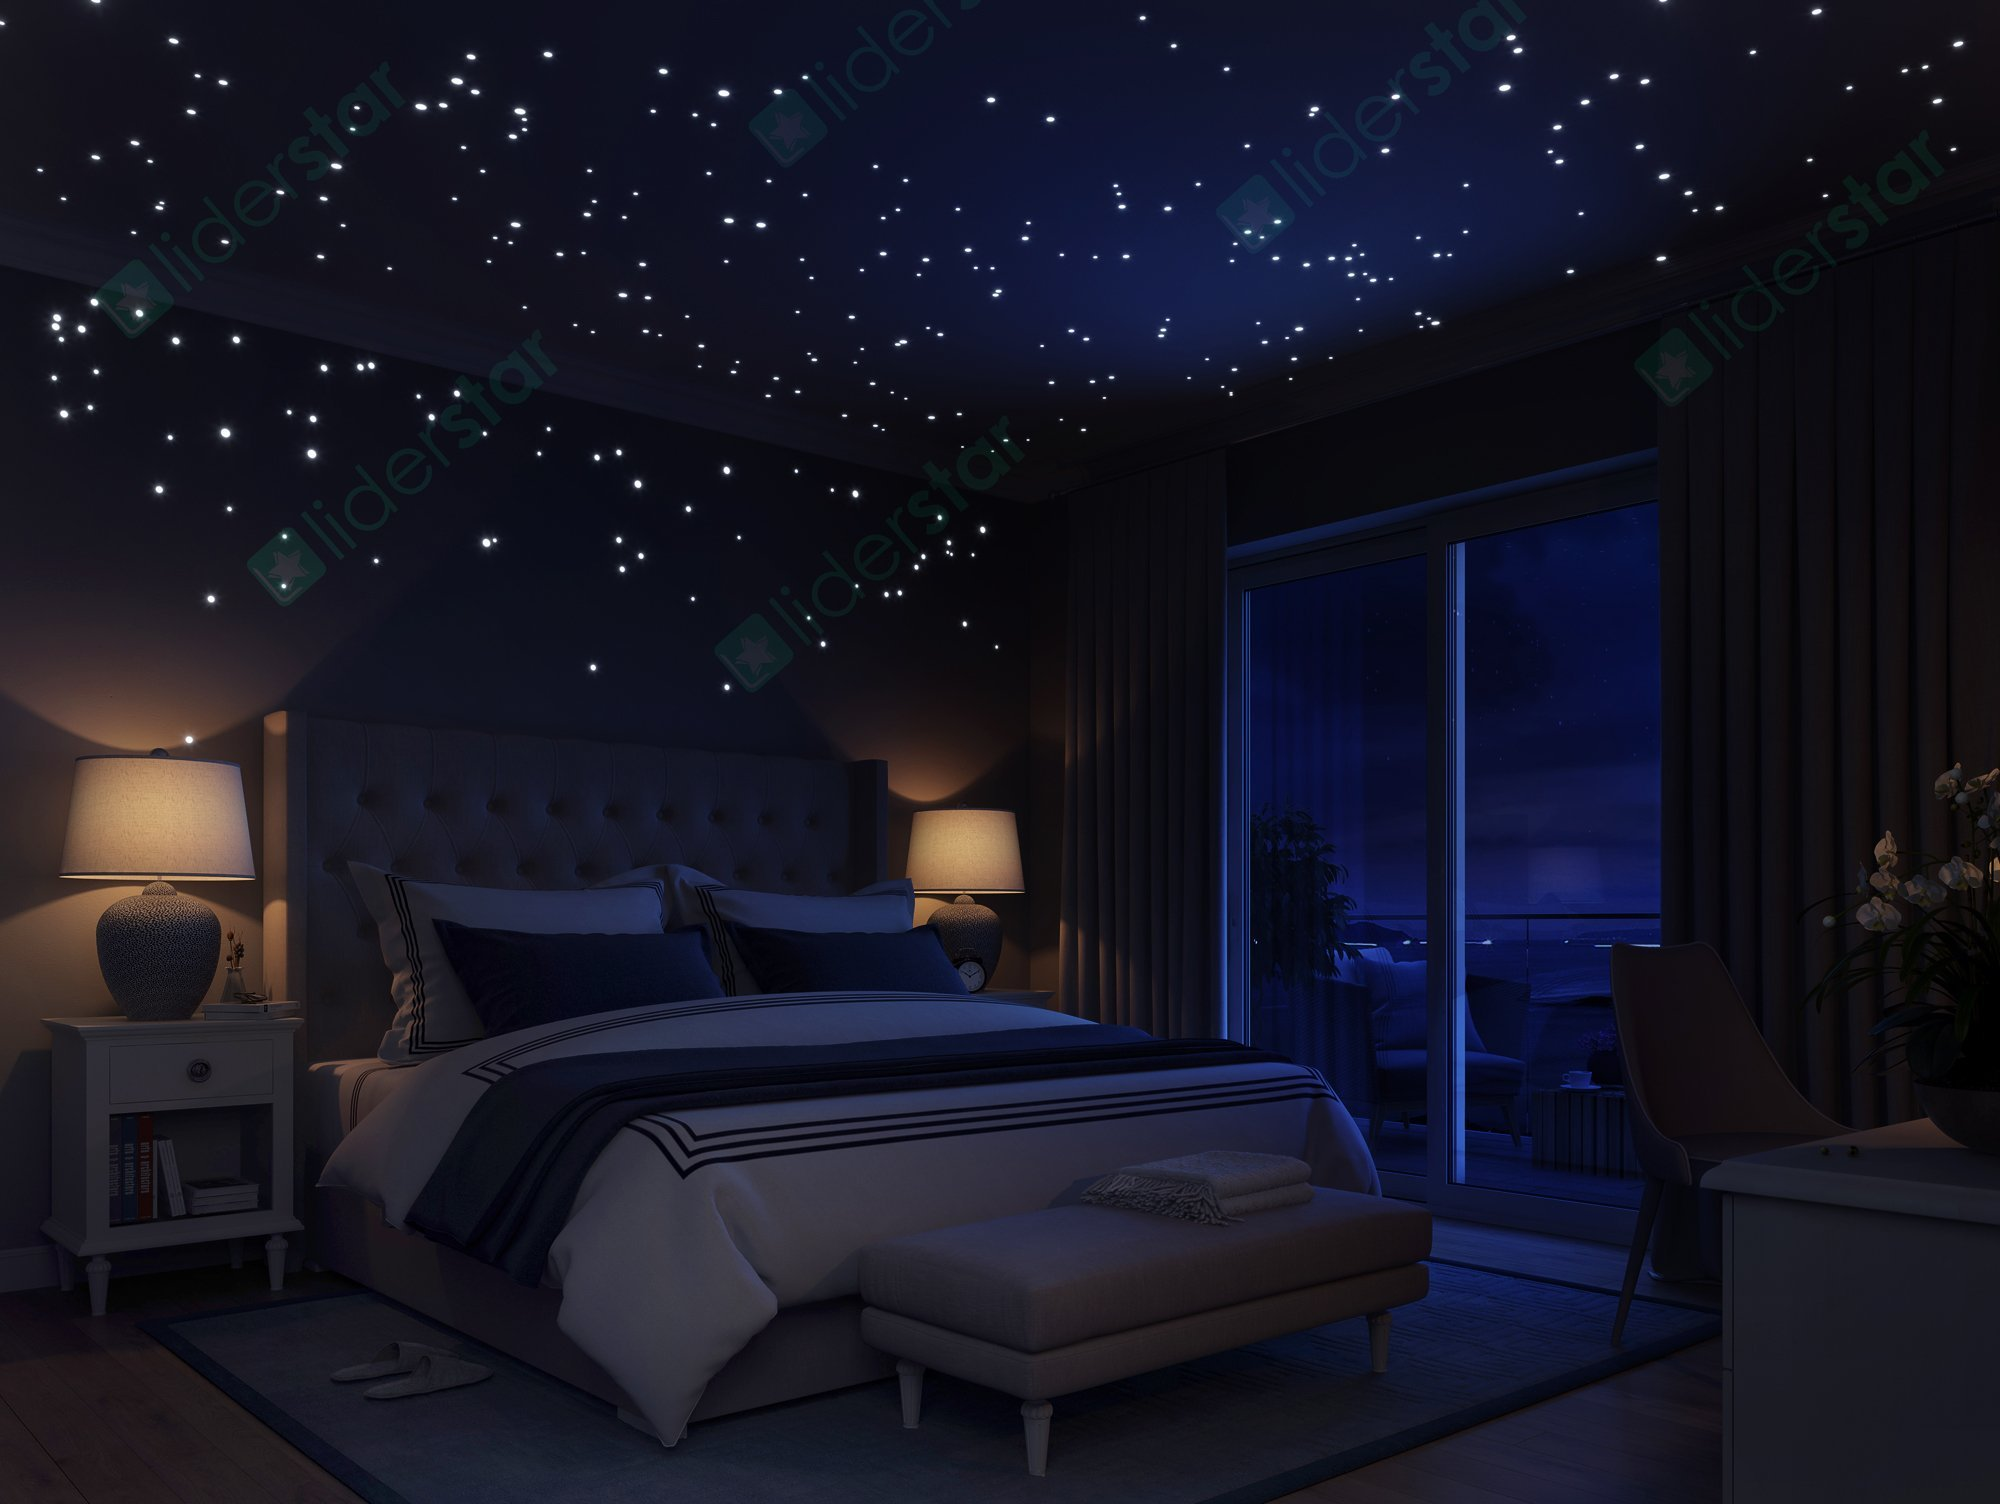 glow in the dark stars wall stickers by liderstar 252 glow in the dark star mix wall stickers glow in the dark